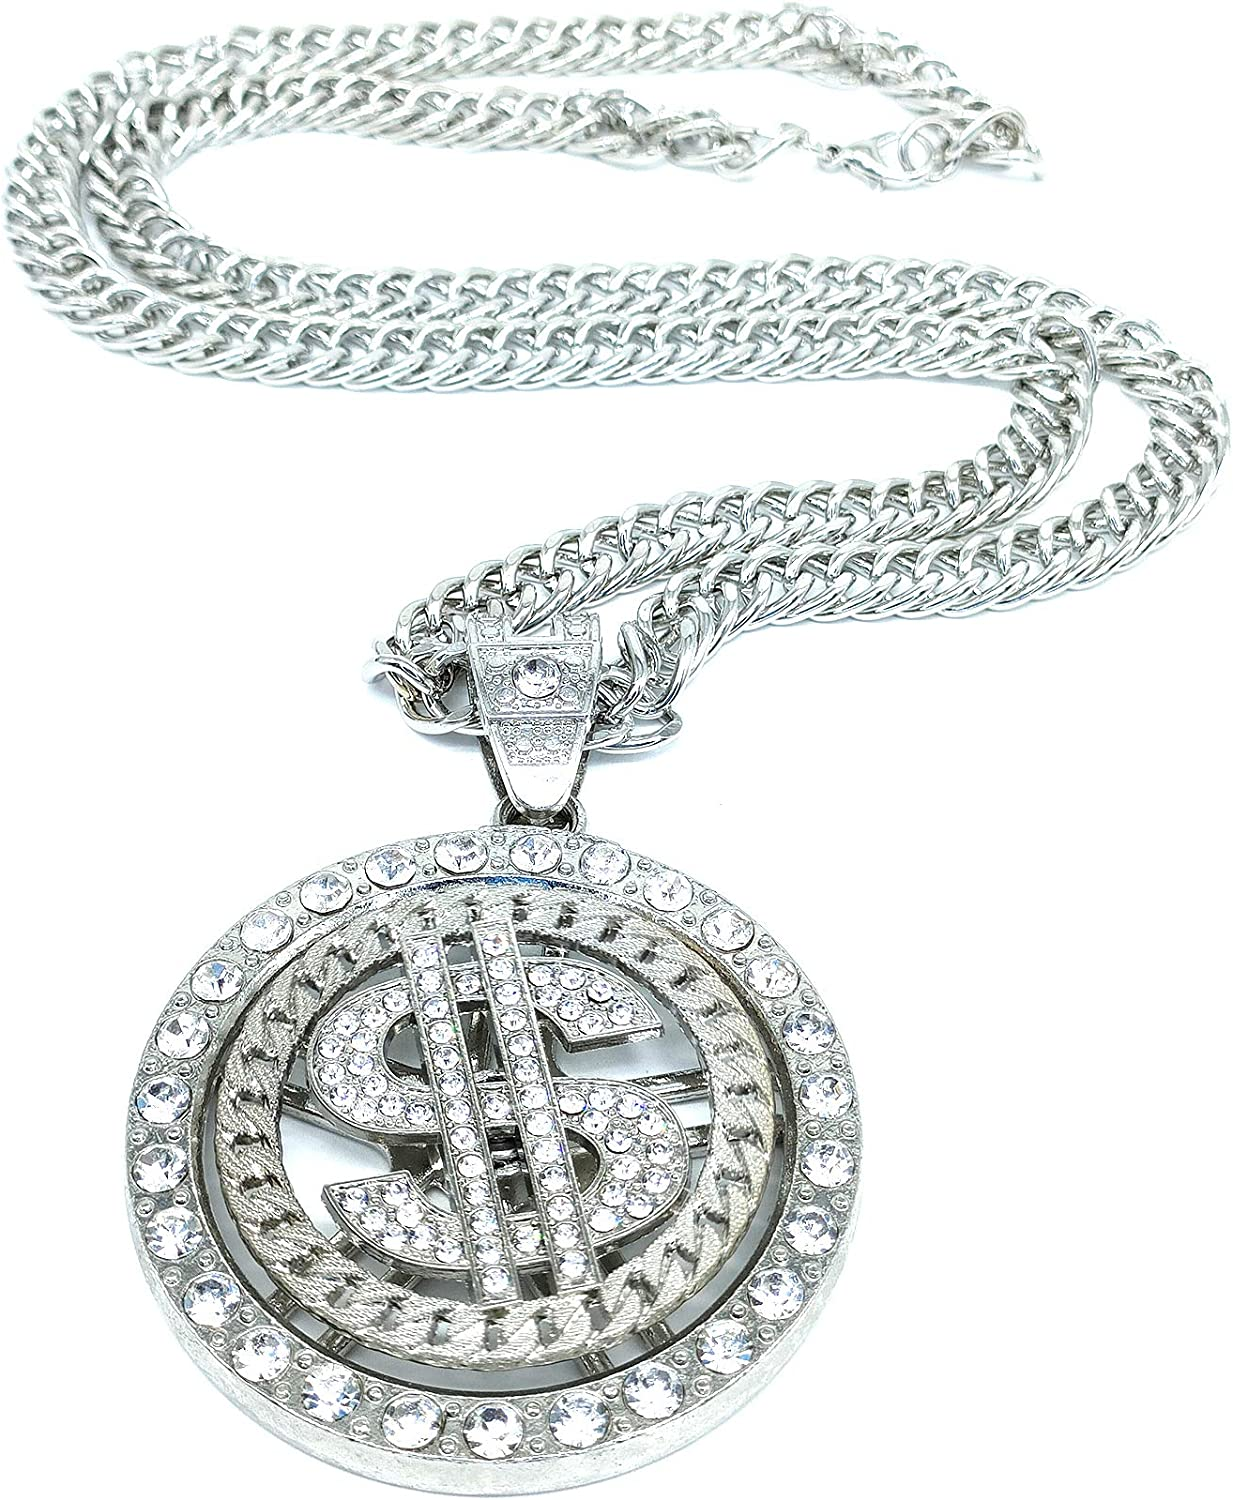 Hslsmxy Hiphop Rotating Big US 1 Popular brand Jacksonville Mall in the world Silver Necklace Dollars Pendant